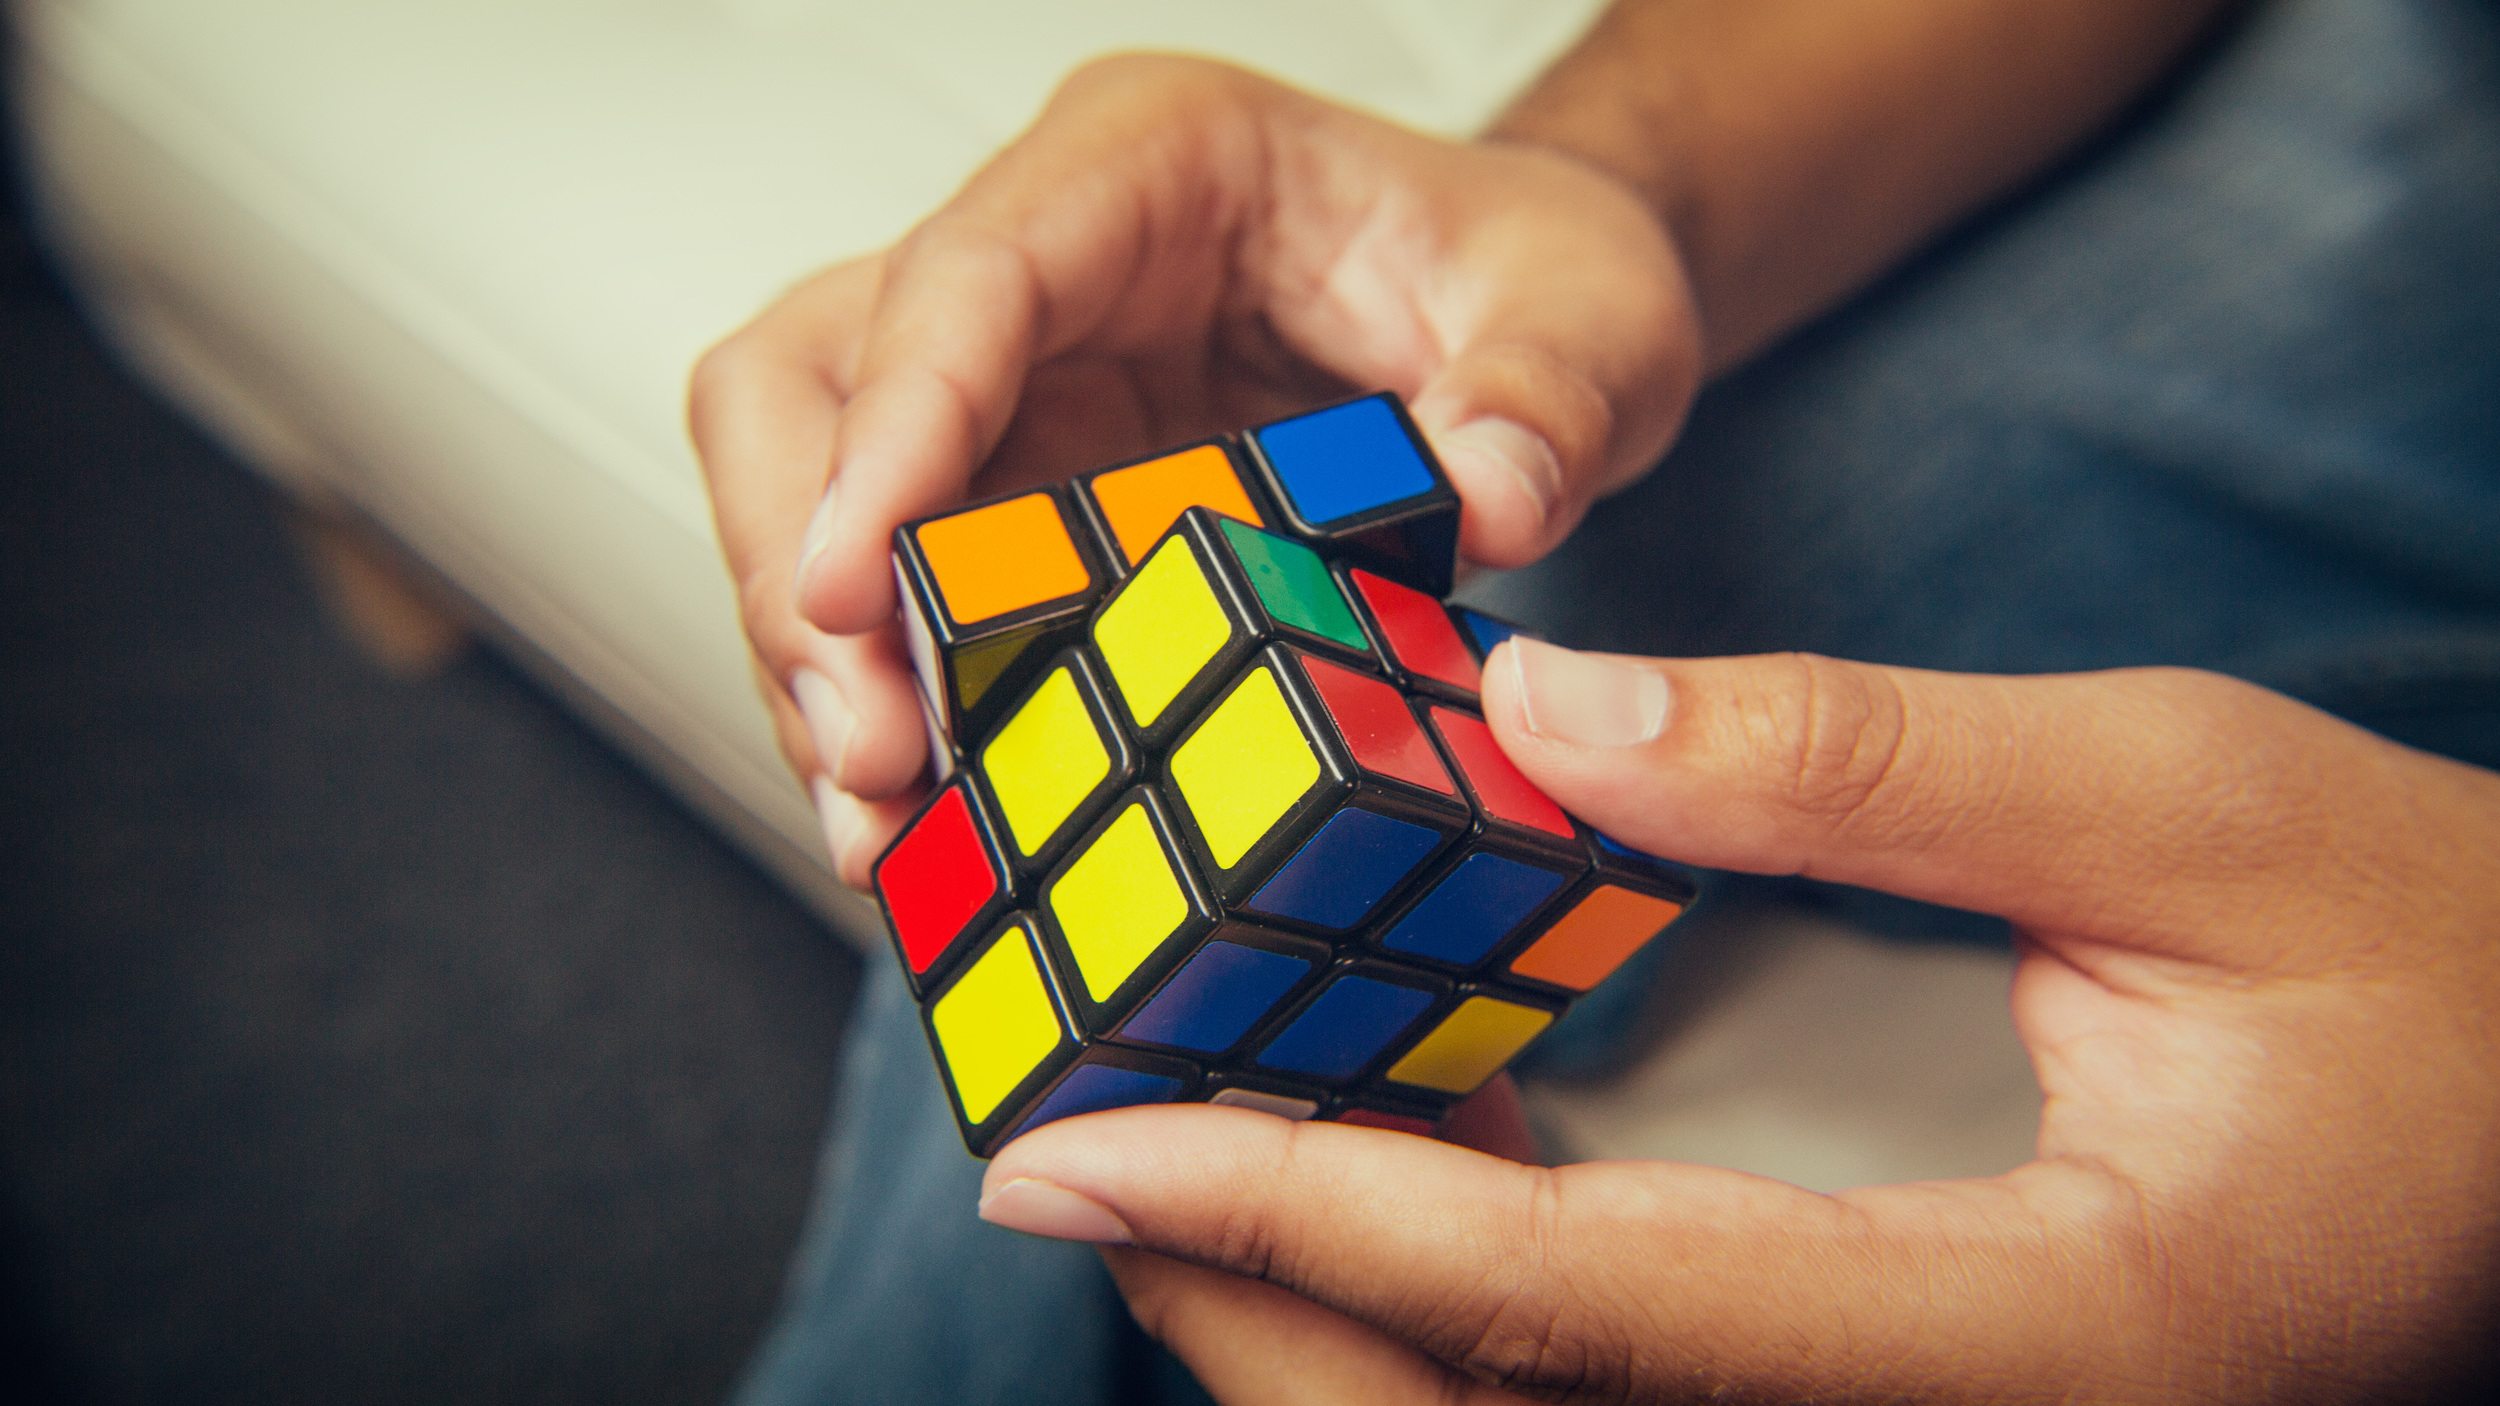 Rubik's Cube Magician with this signature Cube3